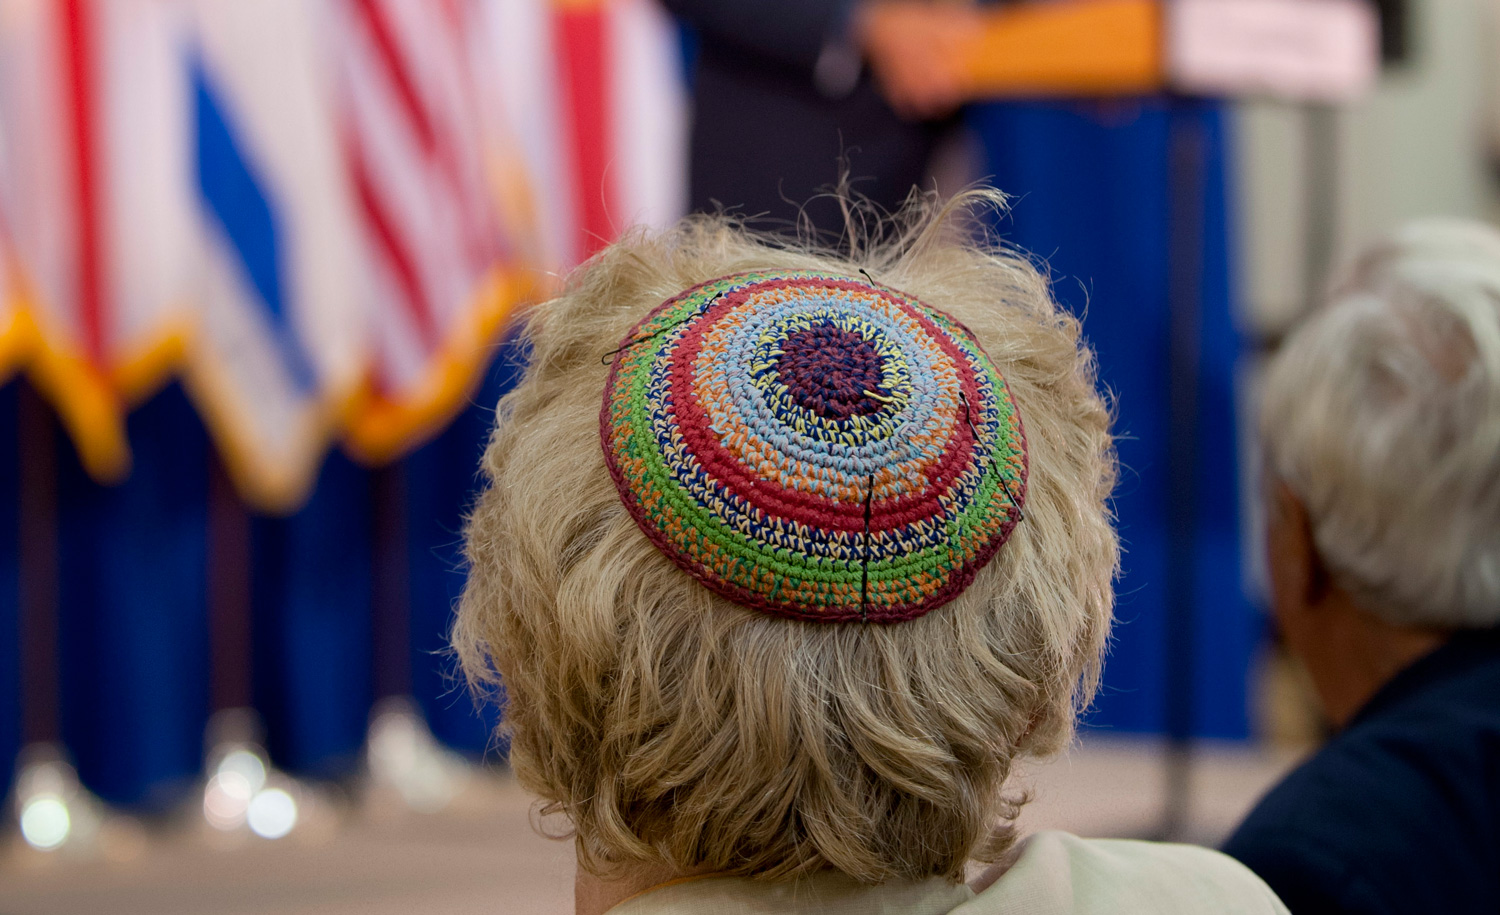 Are American Jews Shifting Their Political Affiliation?